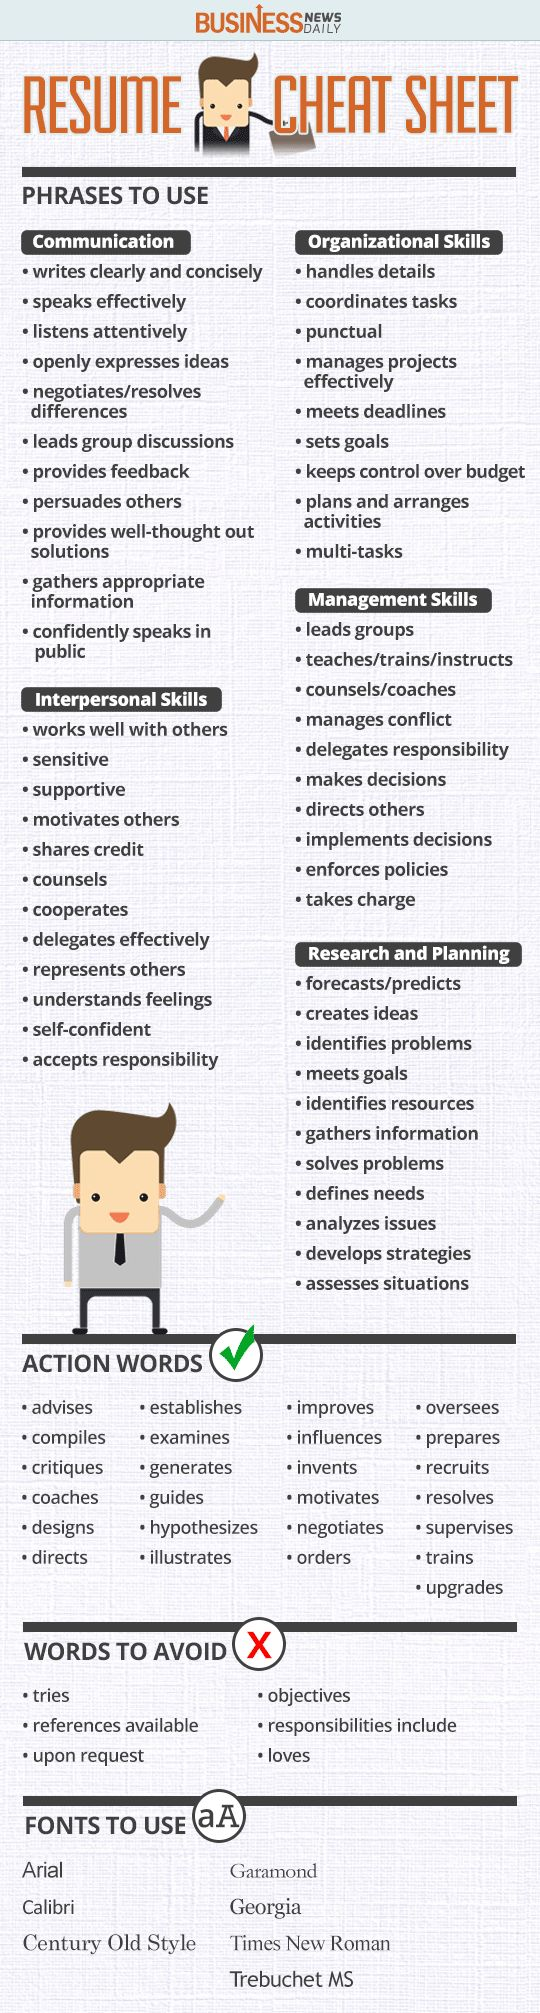 Opposenewapstandardsus  Winning  Ideas About Resume On Pinterest  Cv Format Resume Cv And  With Heavenly Resume Cheat Sheet Infographic Andrews Almost Done With A Complete Unit On Employment Which With Divine How To Type A Resume Also Summary For Resume In Addition Action Verbs For Resume And Making A Resume As Well As Best Resume Template Additionally Bartender Resume From Pinterestcom With Opposenewapstandardsus  Heavenly  Ideas About Resume On Pinterest  Cv Format Resume Cv And  With Divine Resume Cheat Sheet Infographic Andrews Almost Done With A Complete Unit On Employment Which And Winning How To Type A Resume Also Summary For Resume In Addition Action Verbs For Resume From Pinterestcom